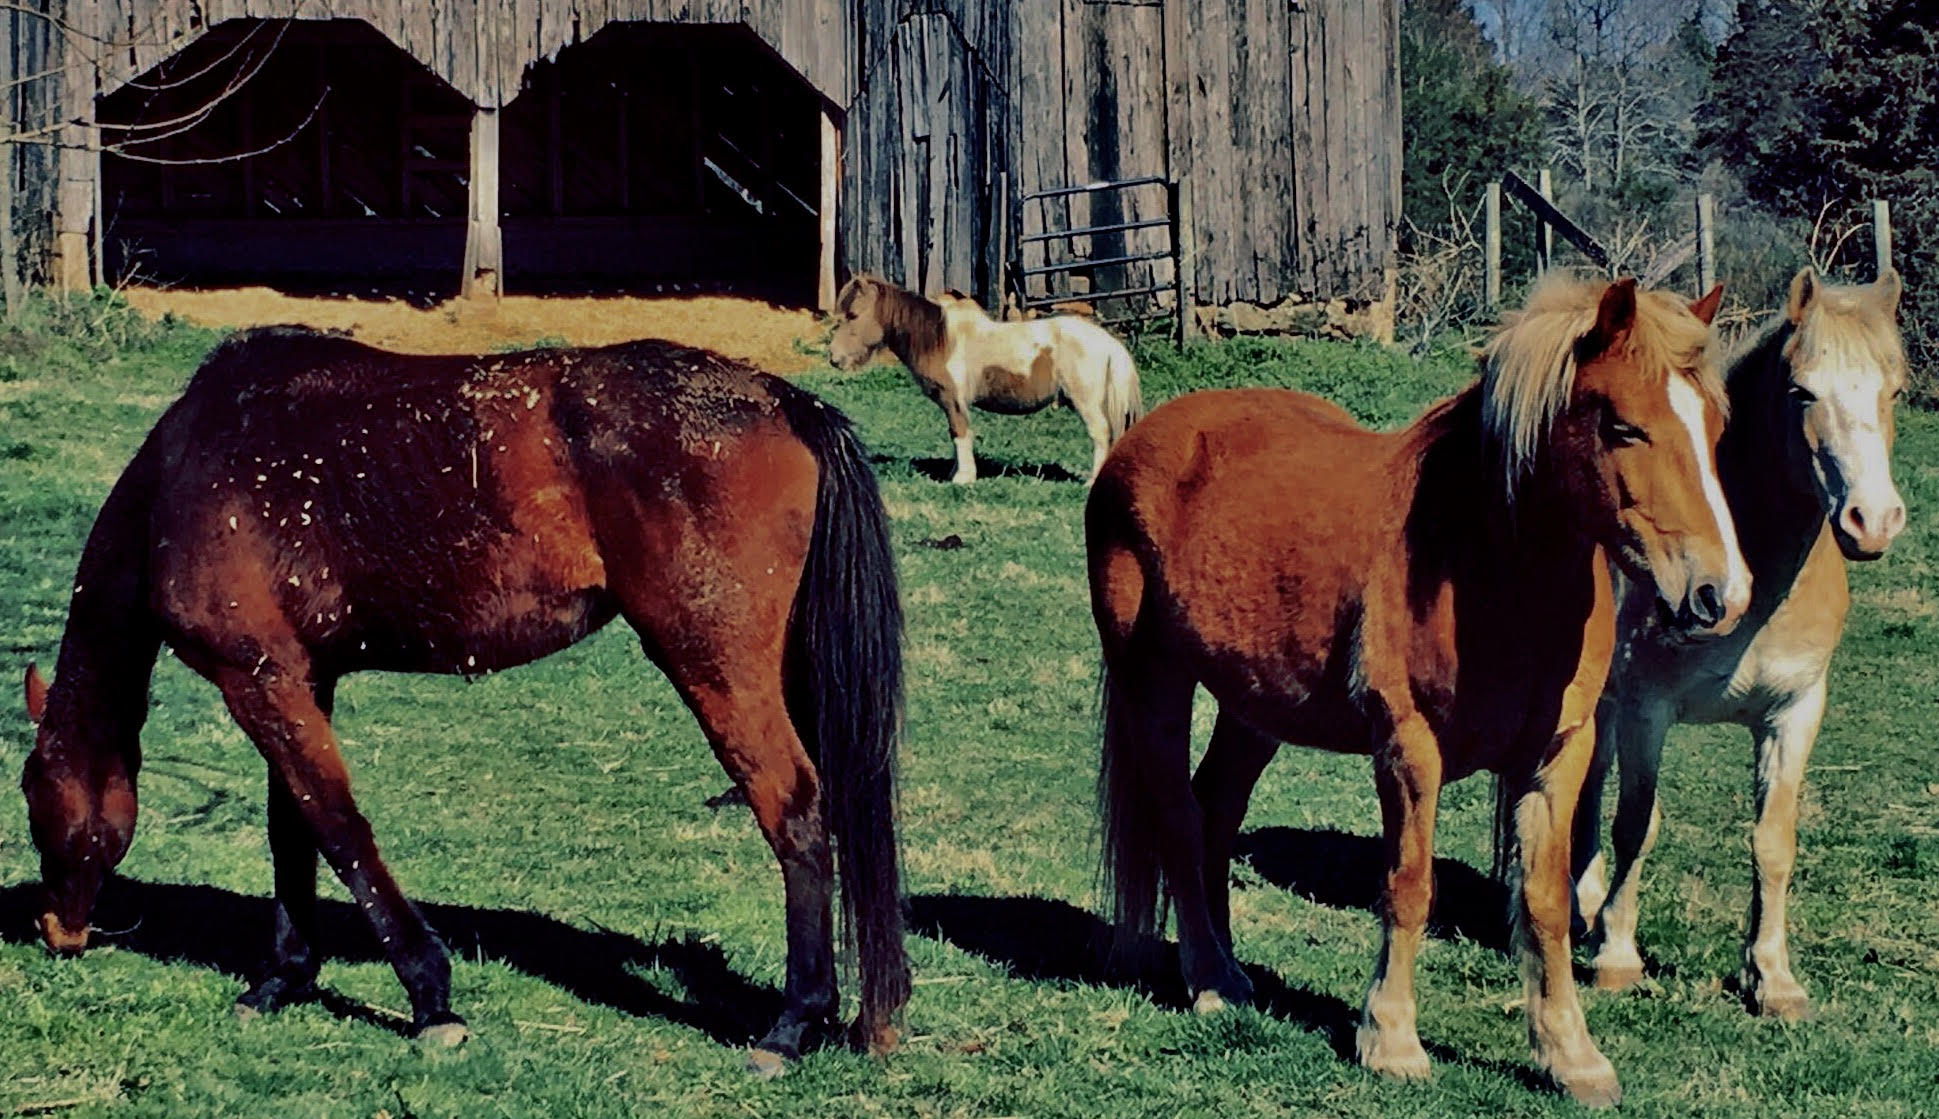 Horses on The Farm